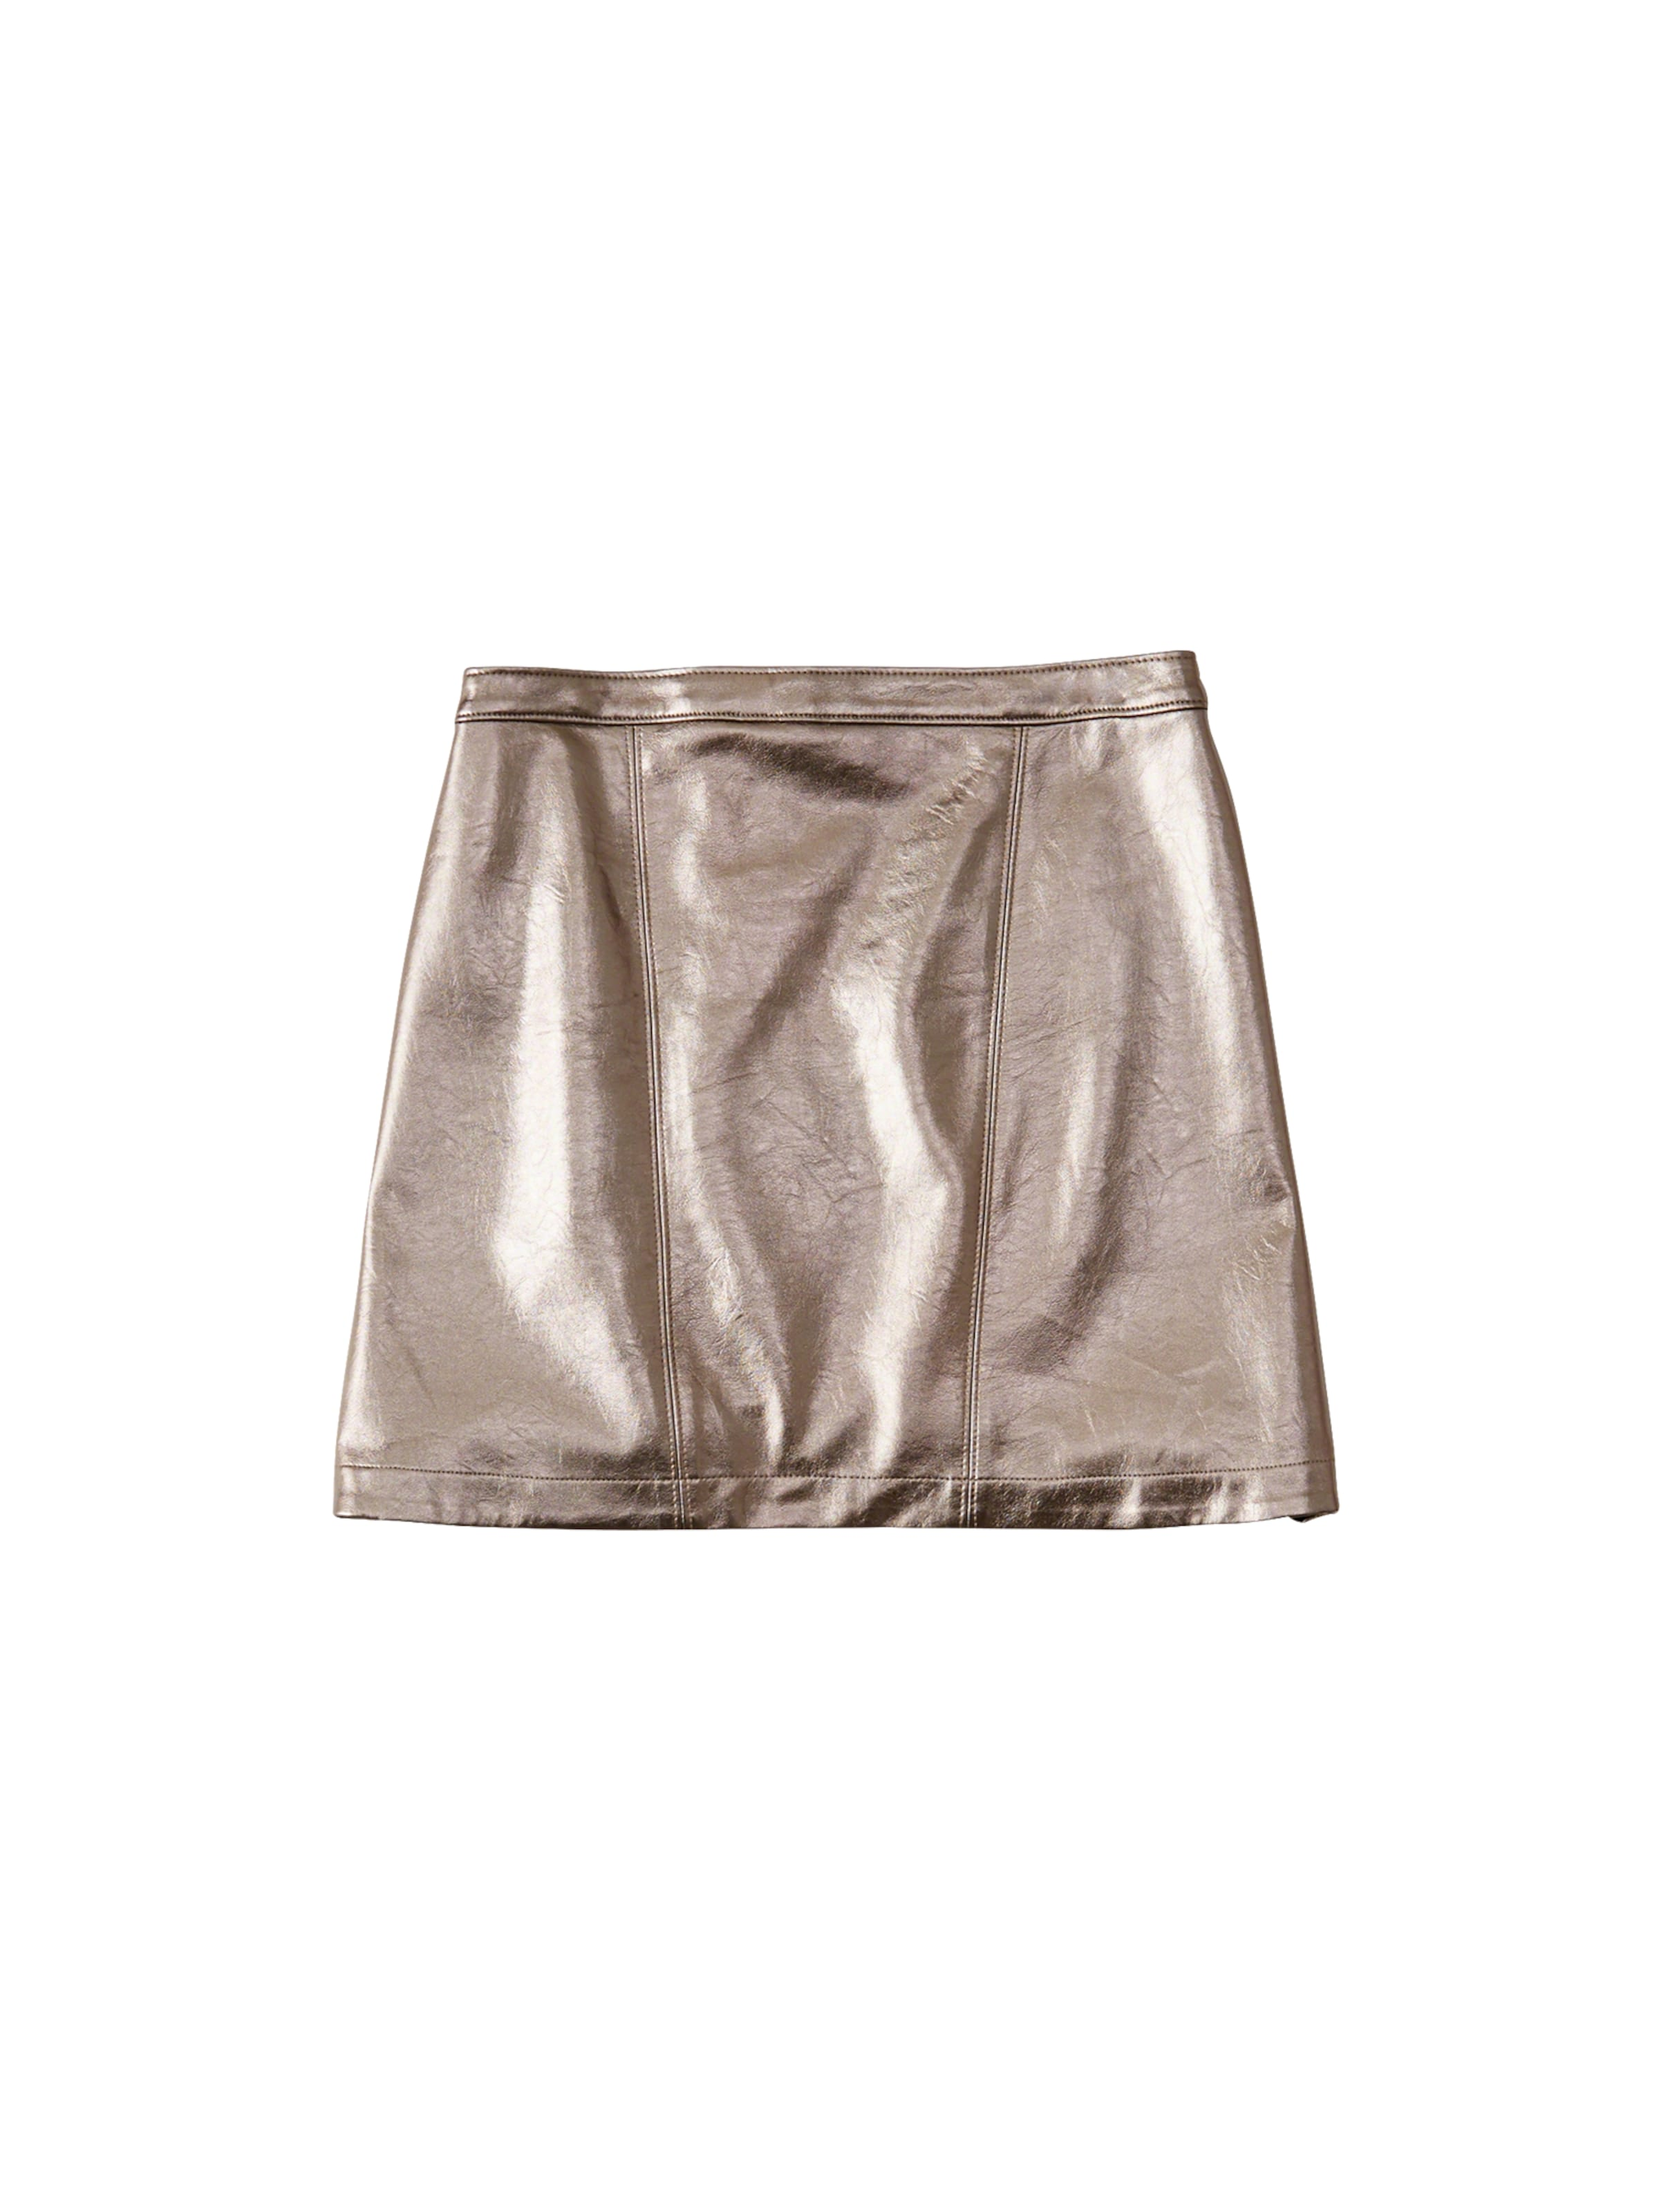 Fitch In Rock metallic Mini' Abercrombieamp; 'xm18 Silber zpLUSqVGM